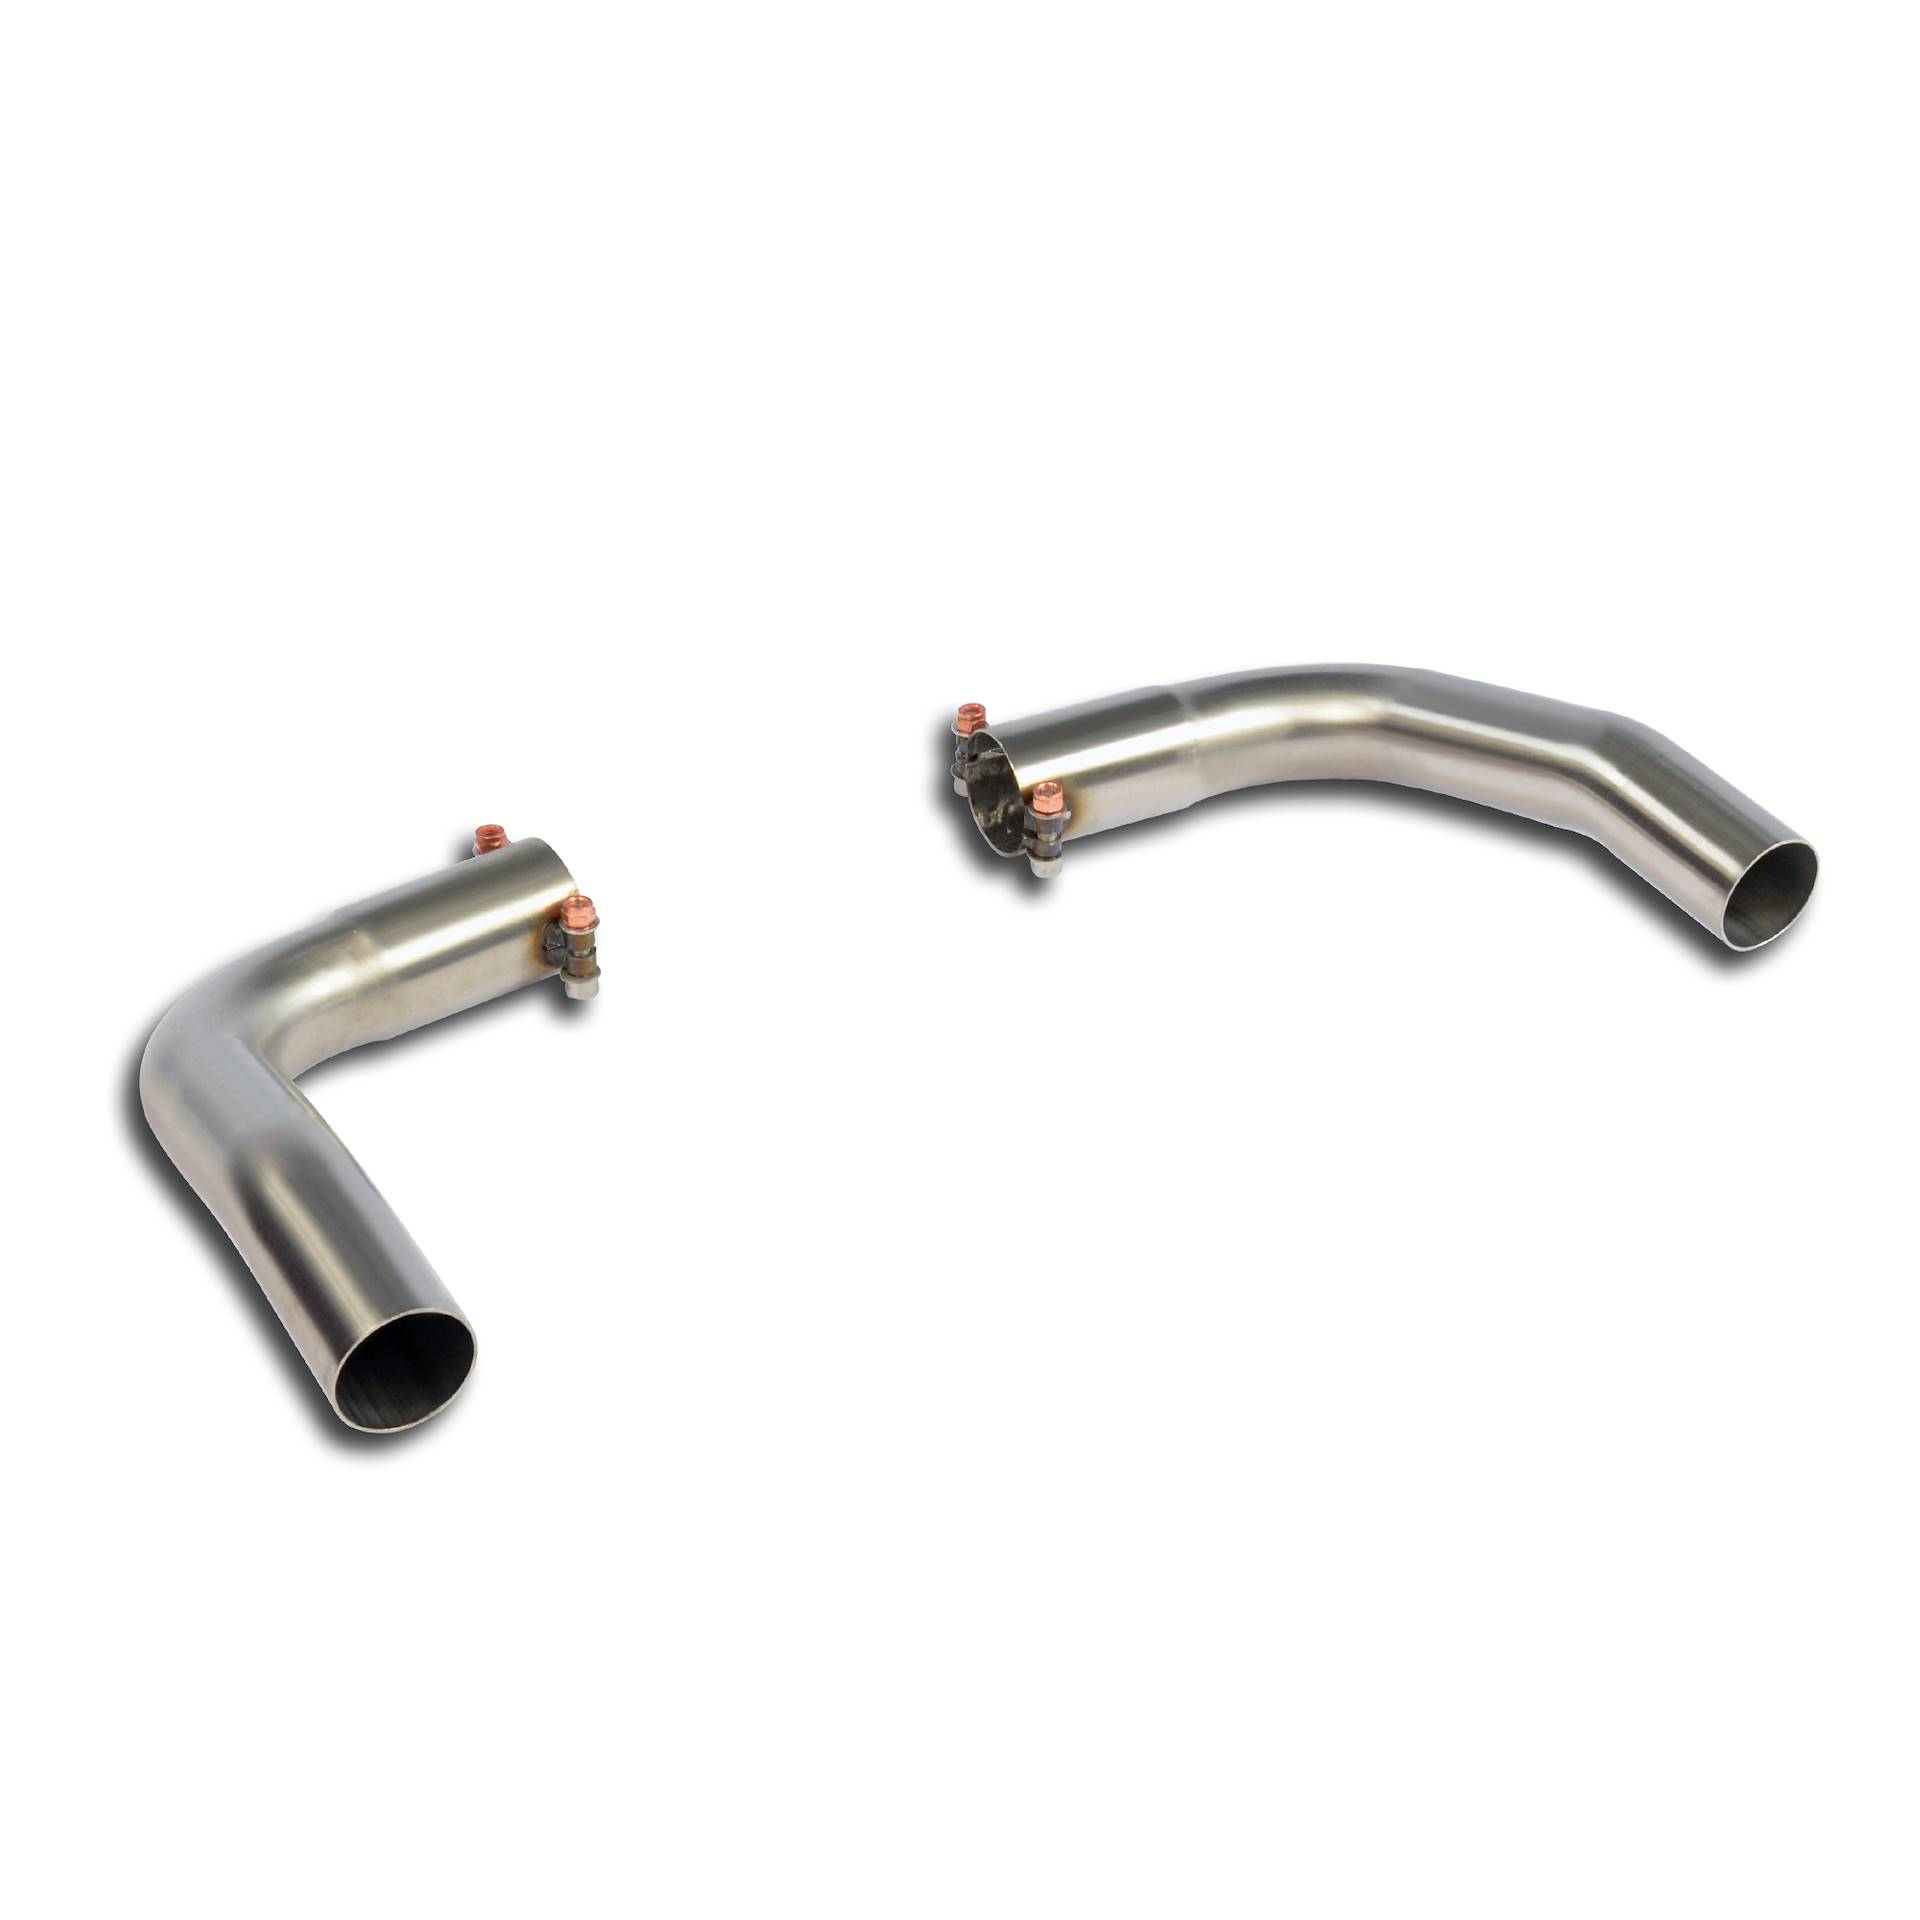 Mercedes - MERCEDES X156 GLA 250 4-Matic (211 Hp) 2013 -> Exit pipes kit Right - Left, performance exhaust systems